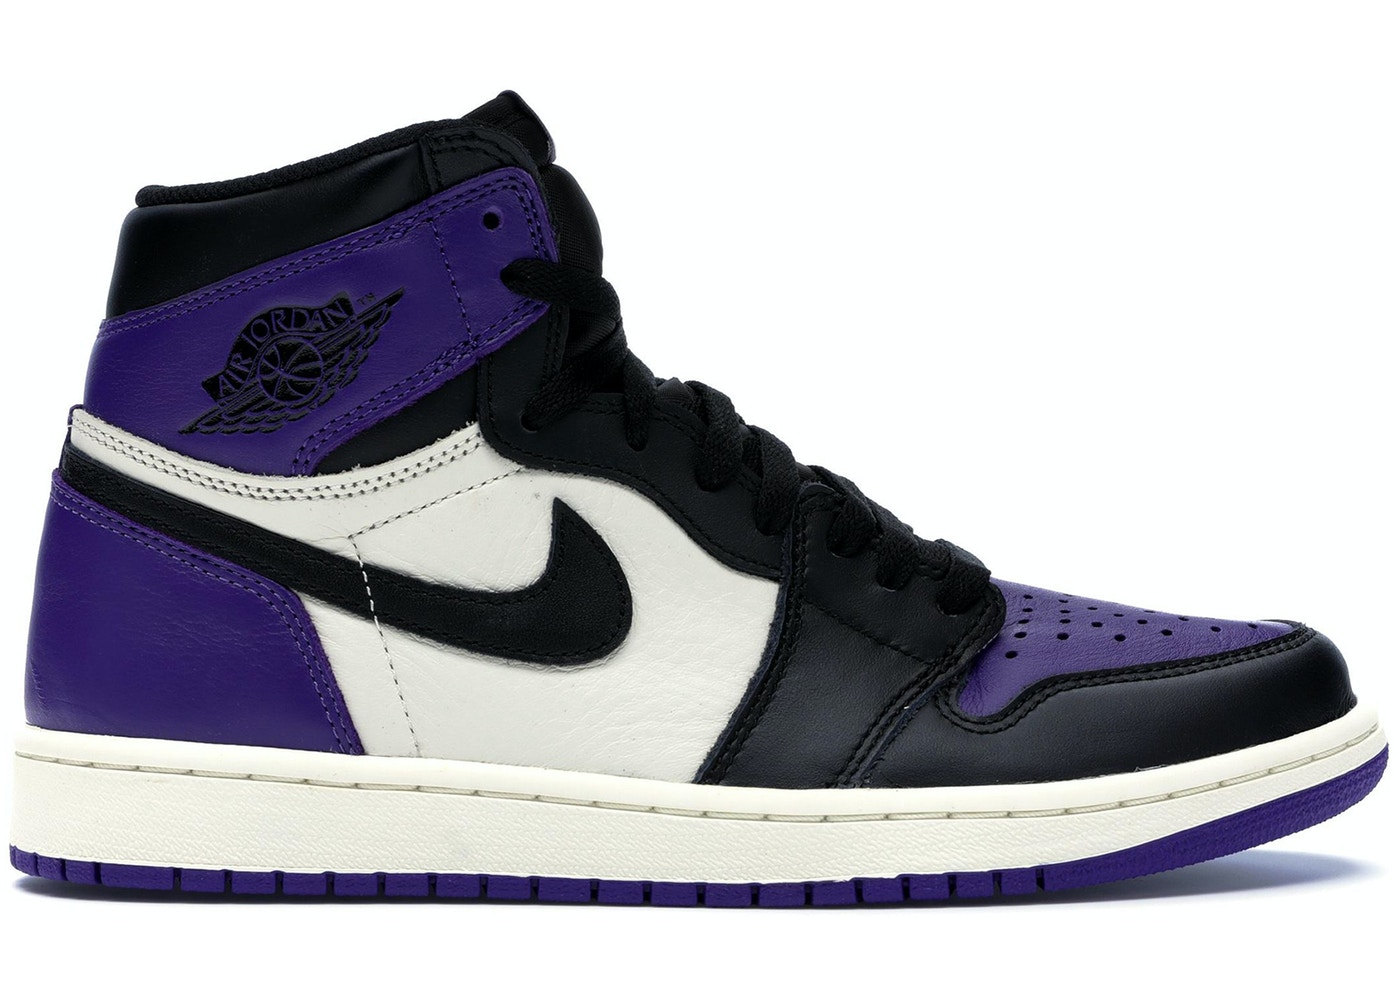 a3e3db47881 Jordan 1 Retro High Court Purple - 555088-501